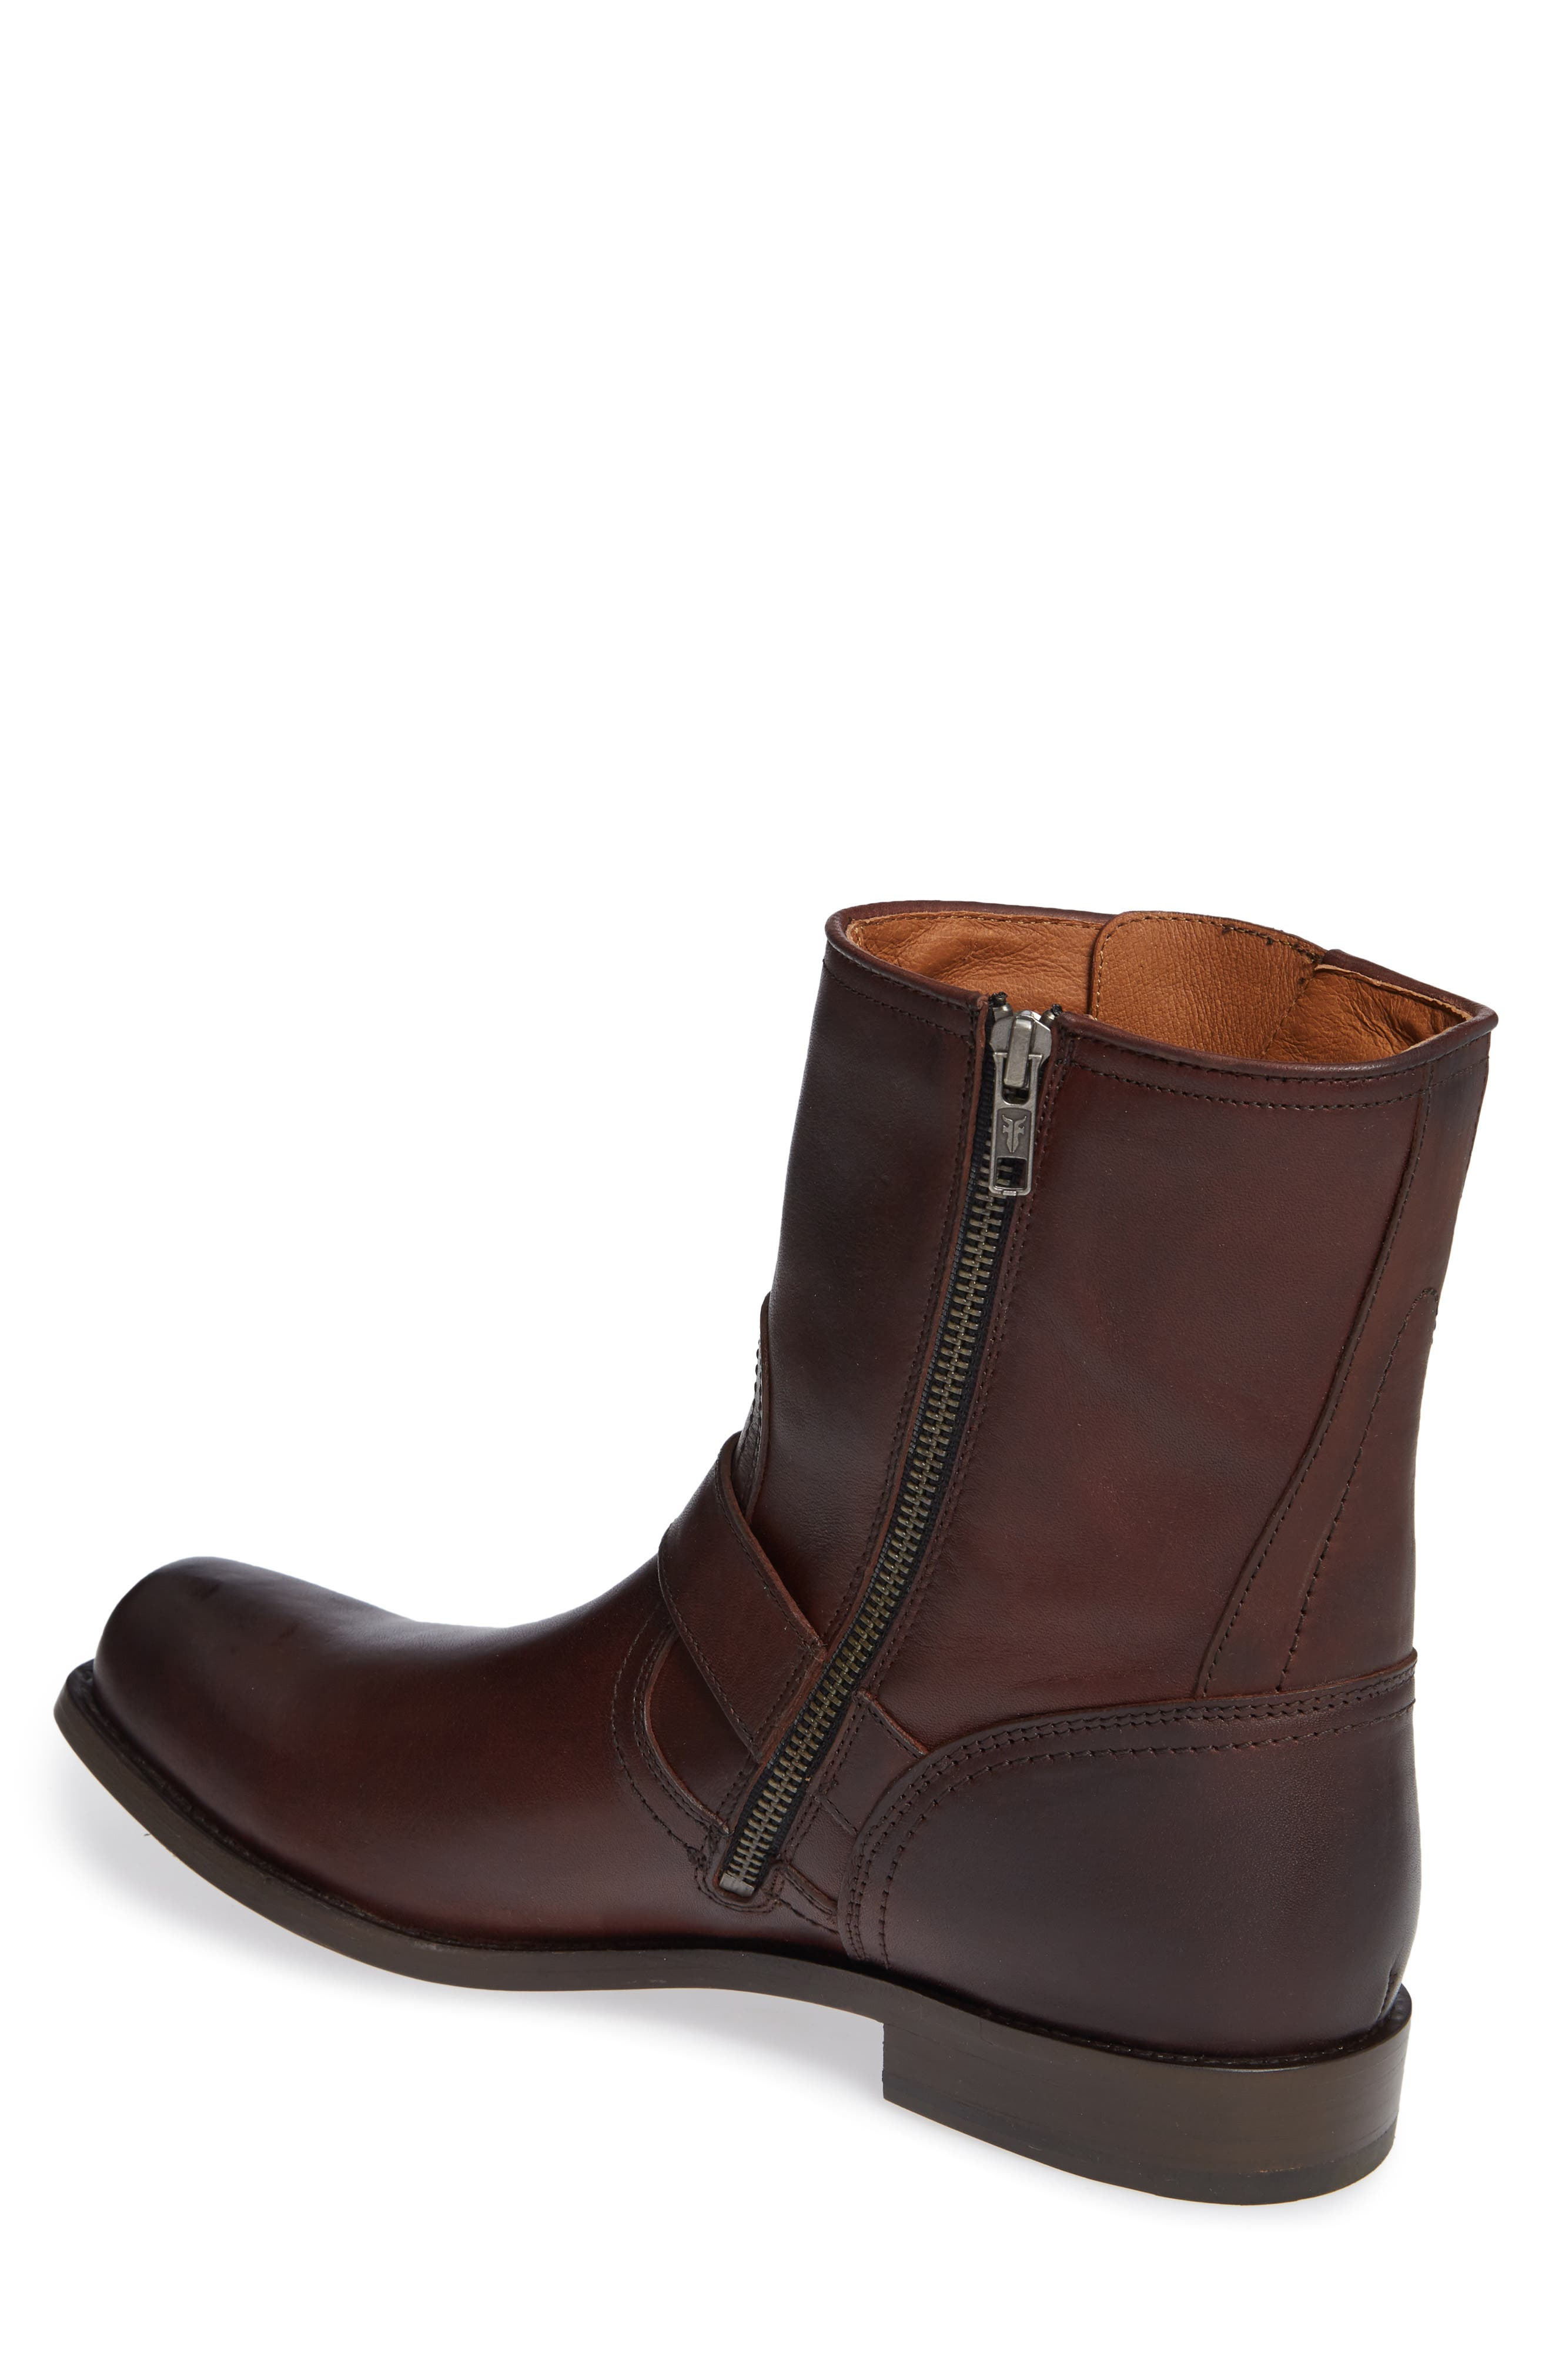 Smith Engineer Boot,                             Alternate thumbnail 2, color,                             BROWN